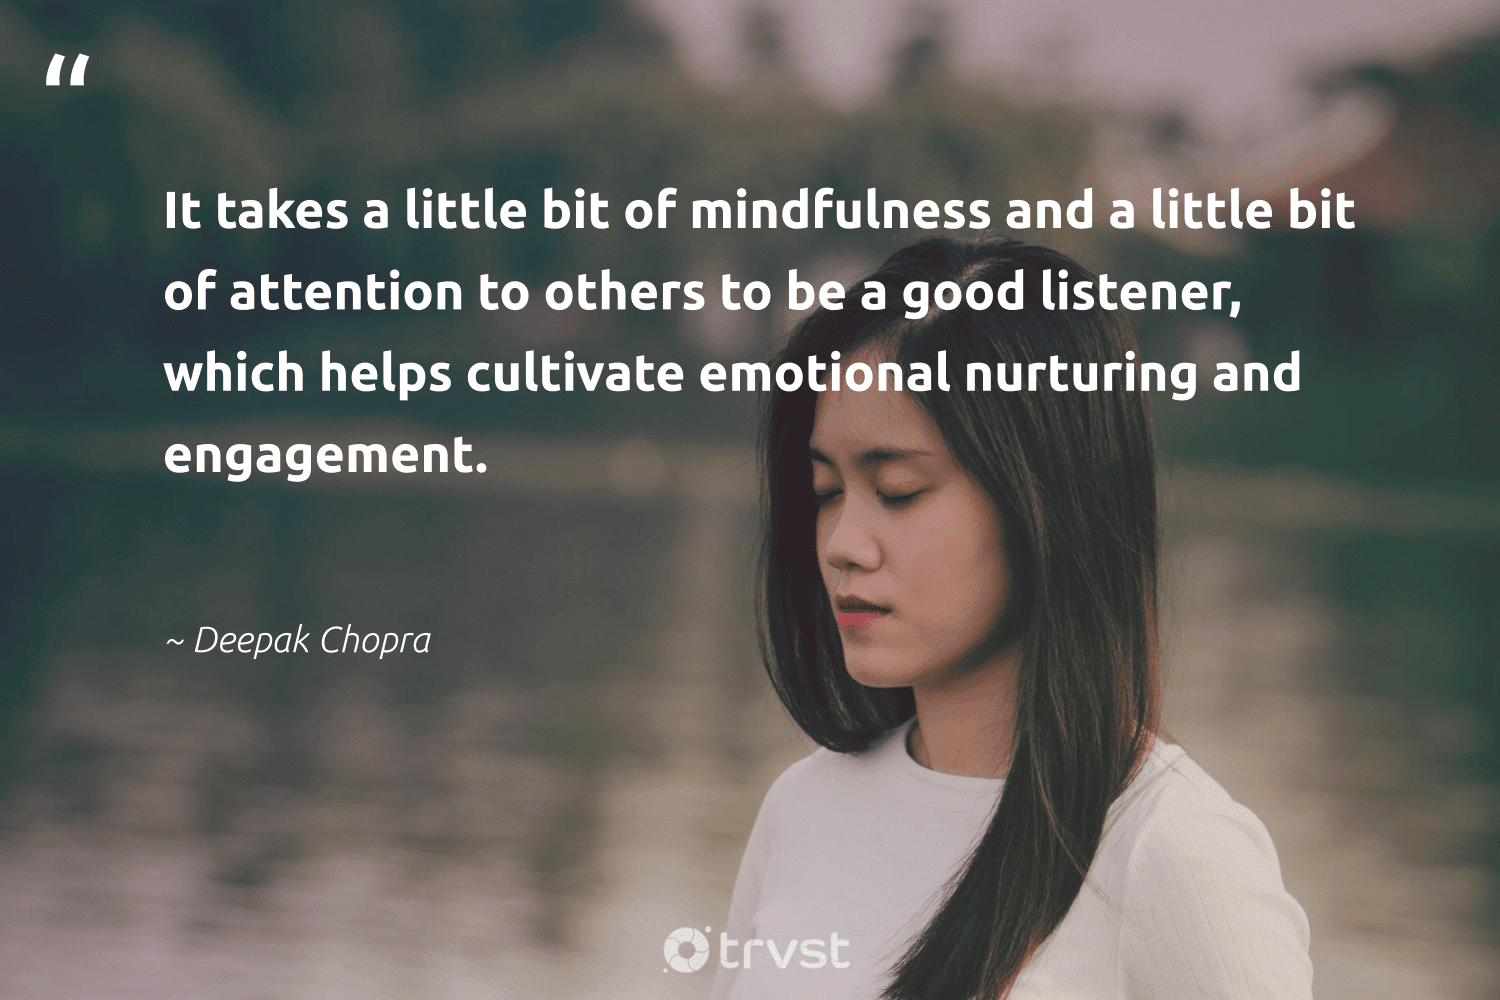 """""""It takes a little bit of mindfulness and a little bit of attention to others to be a good listener, which helps cultivate emotional nurturing and engagement.""""  - Deepak Chopra #trvst #quotes #mindfulness #meditation #mindset #togetherwecan #bethechange #goals #mindful #nevergiveup #beinspired #growthmindset"""